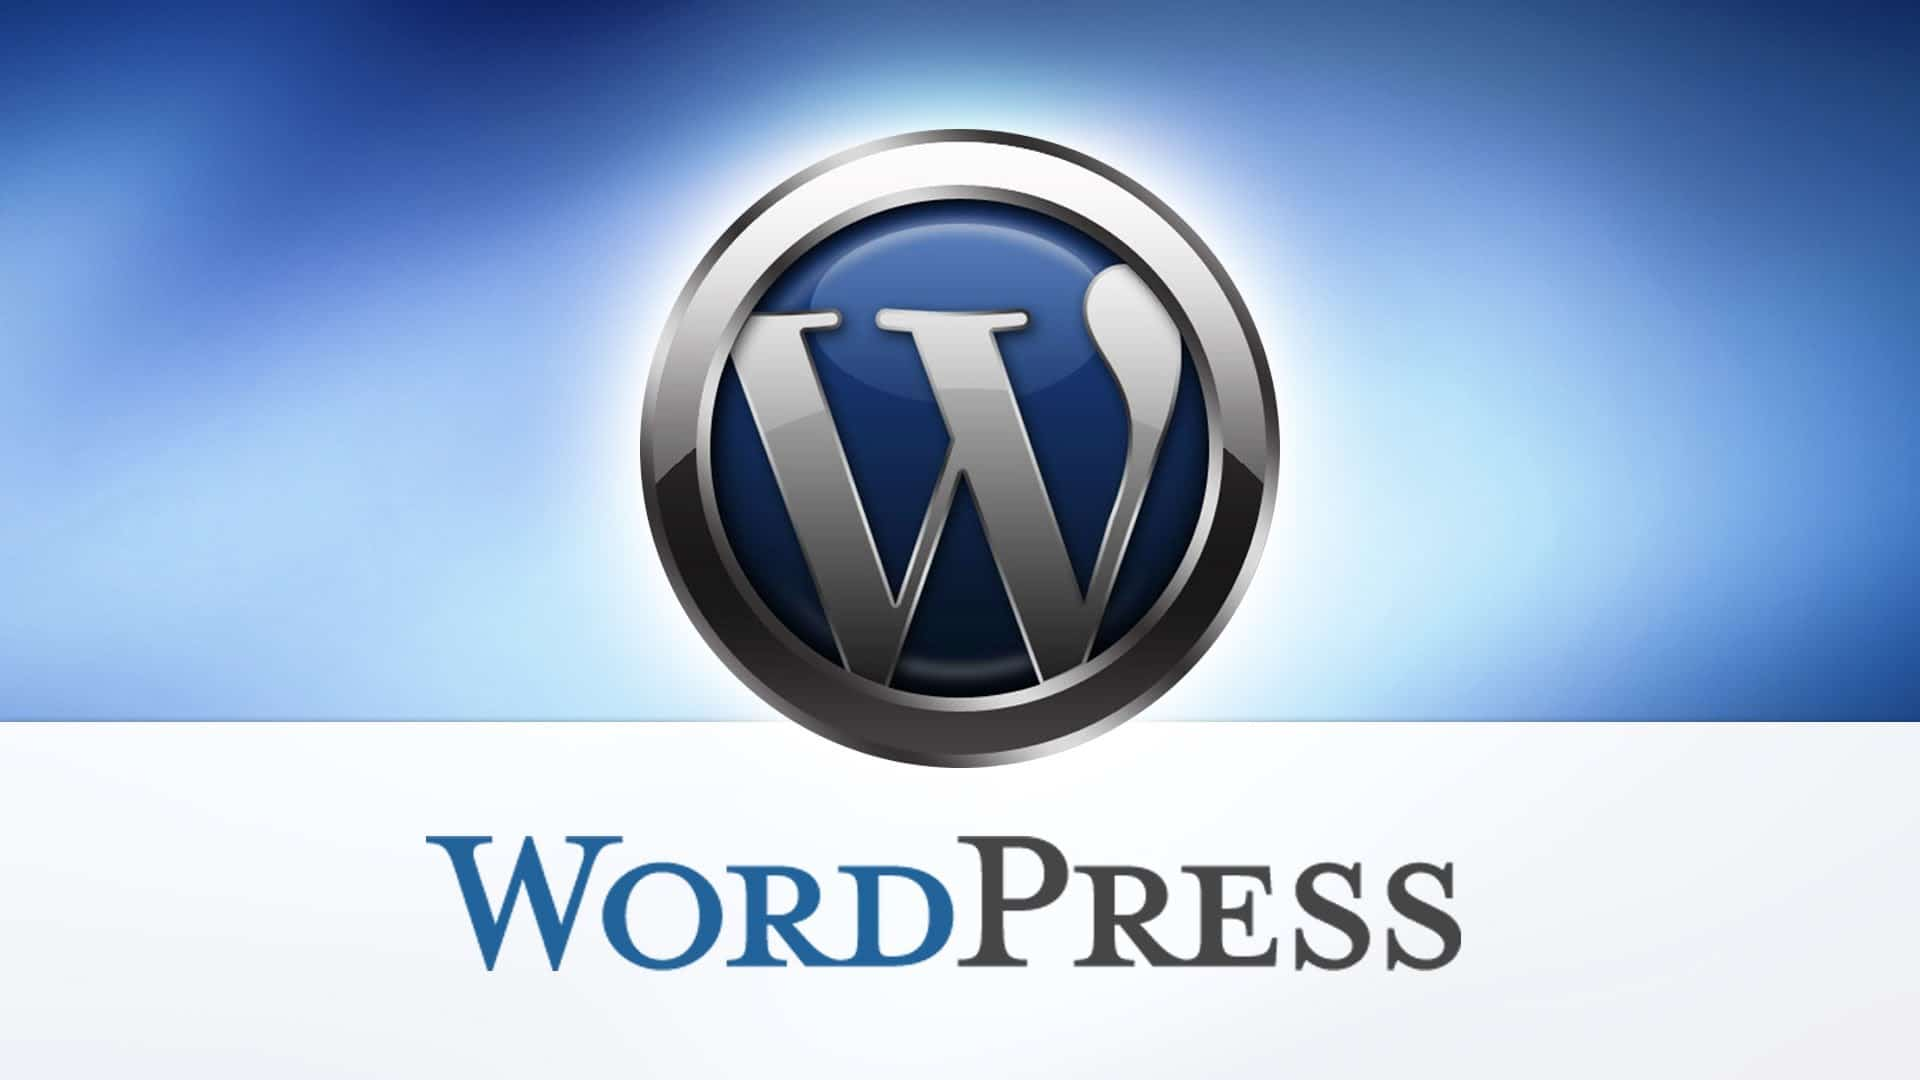 WordPress Website - Web Design Hong Kong